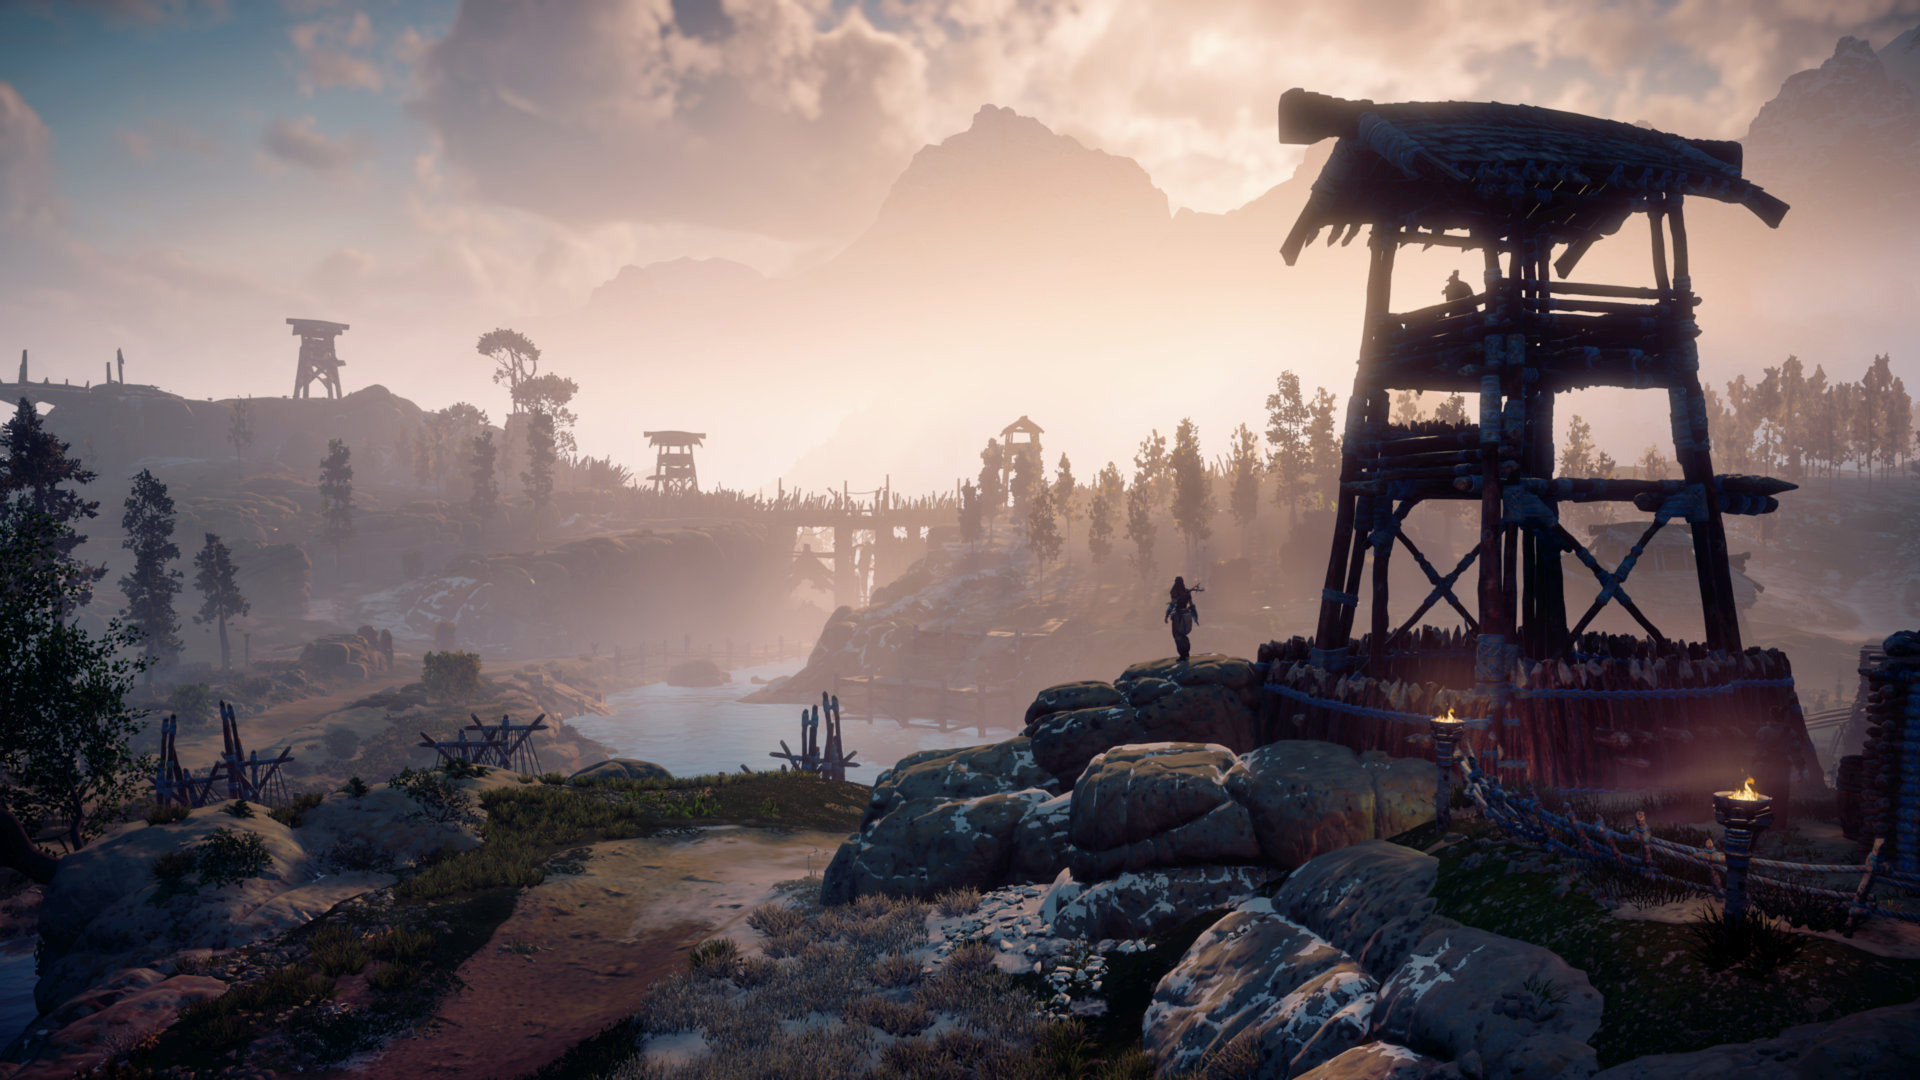 Horizon Zero Dawn is a Mix of Tomb Raider and The Witcher